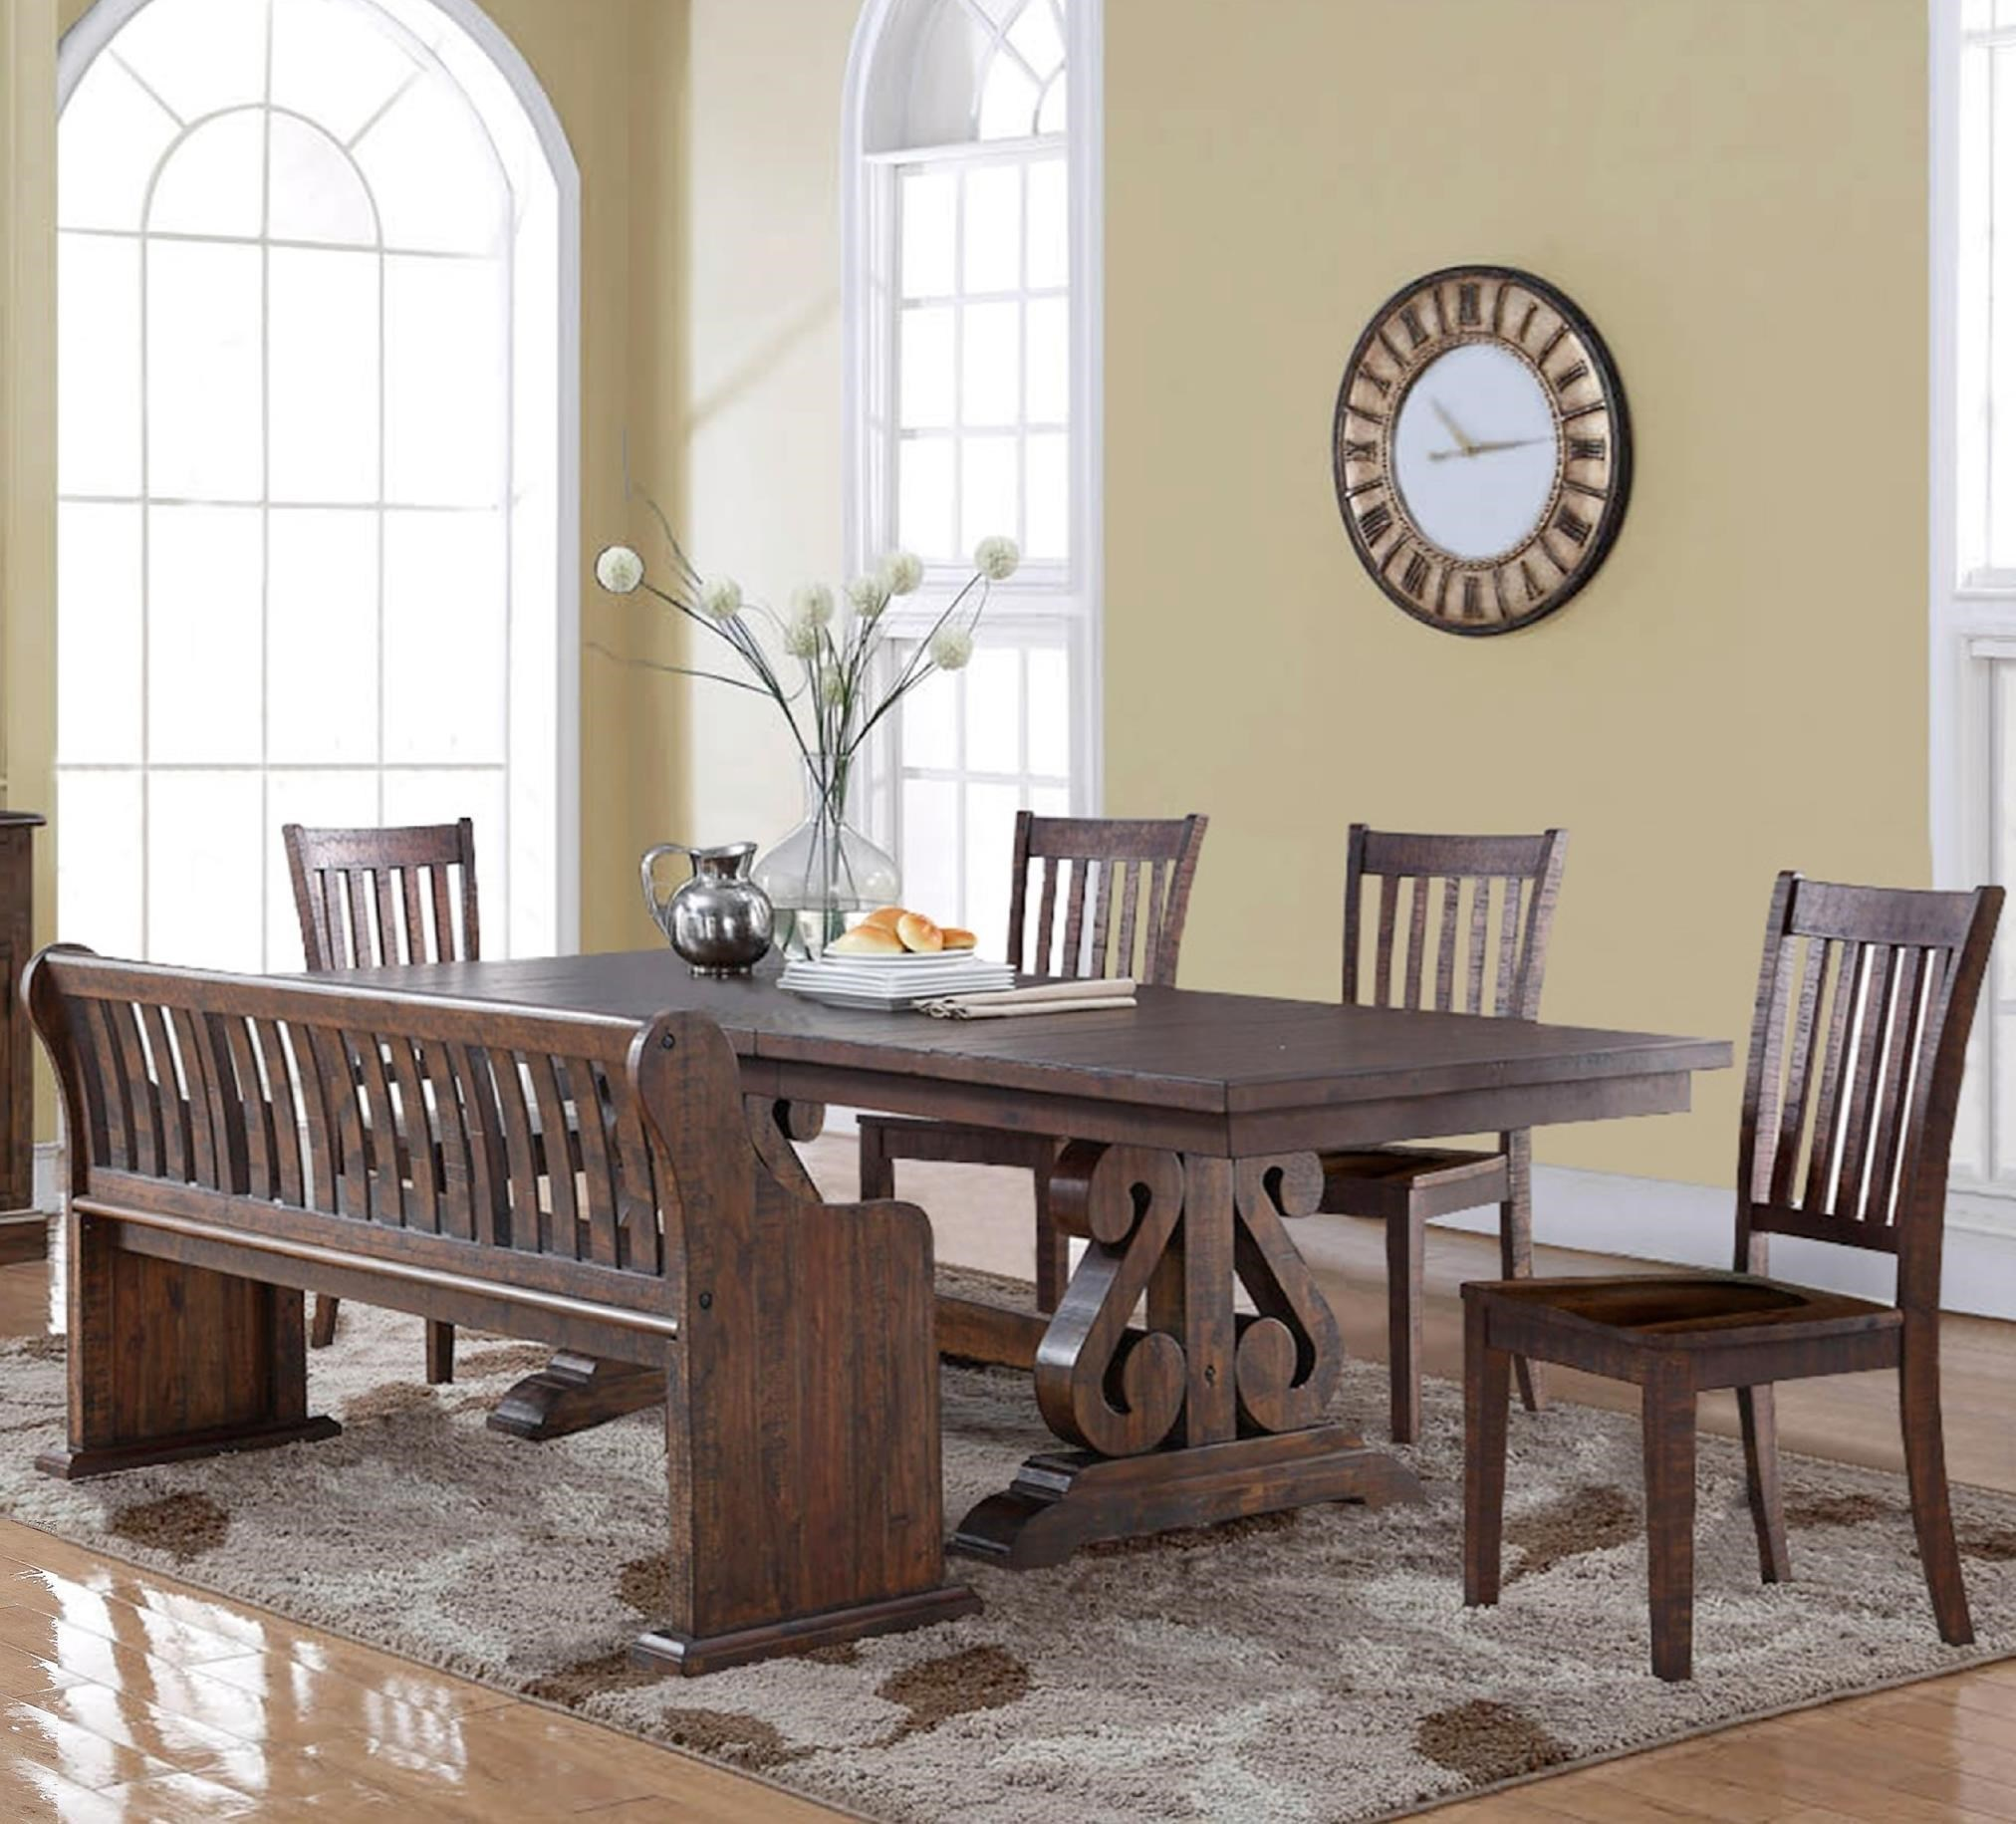 New Classic San Juan Six Piece Dining Table And Chair Set With Bench    Adcock Furniture   Table U0026 Chair Set With Bench